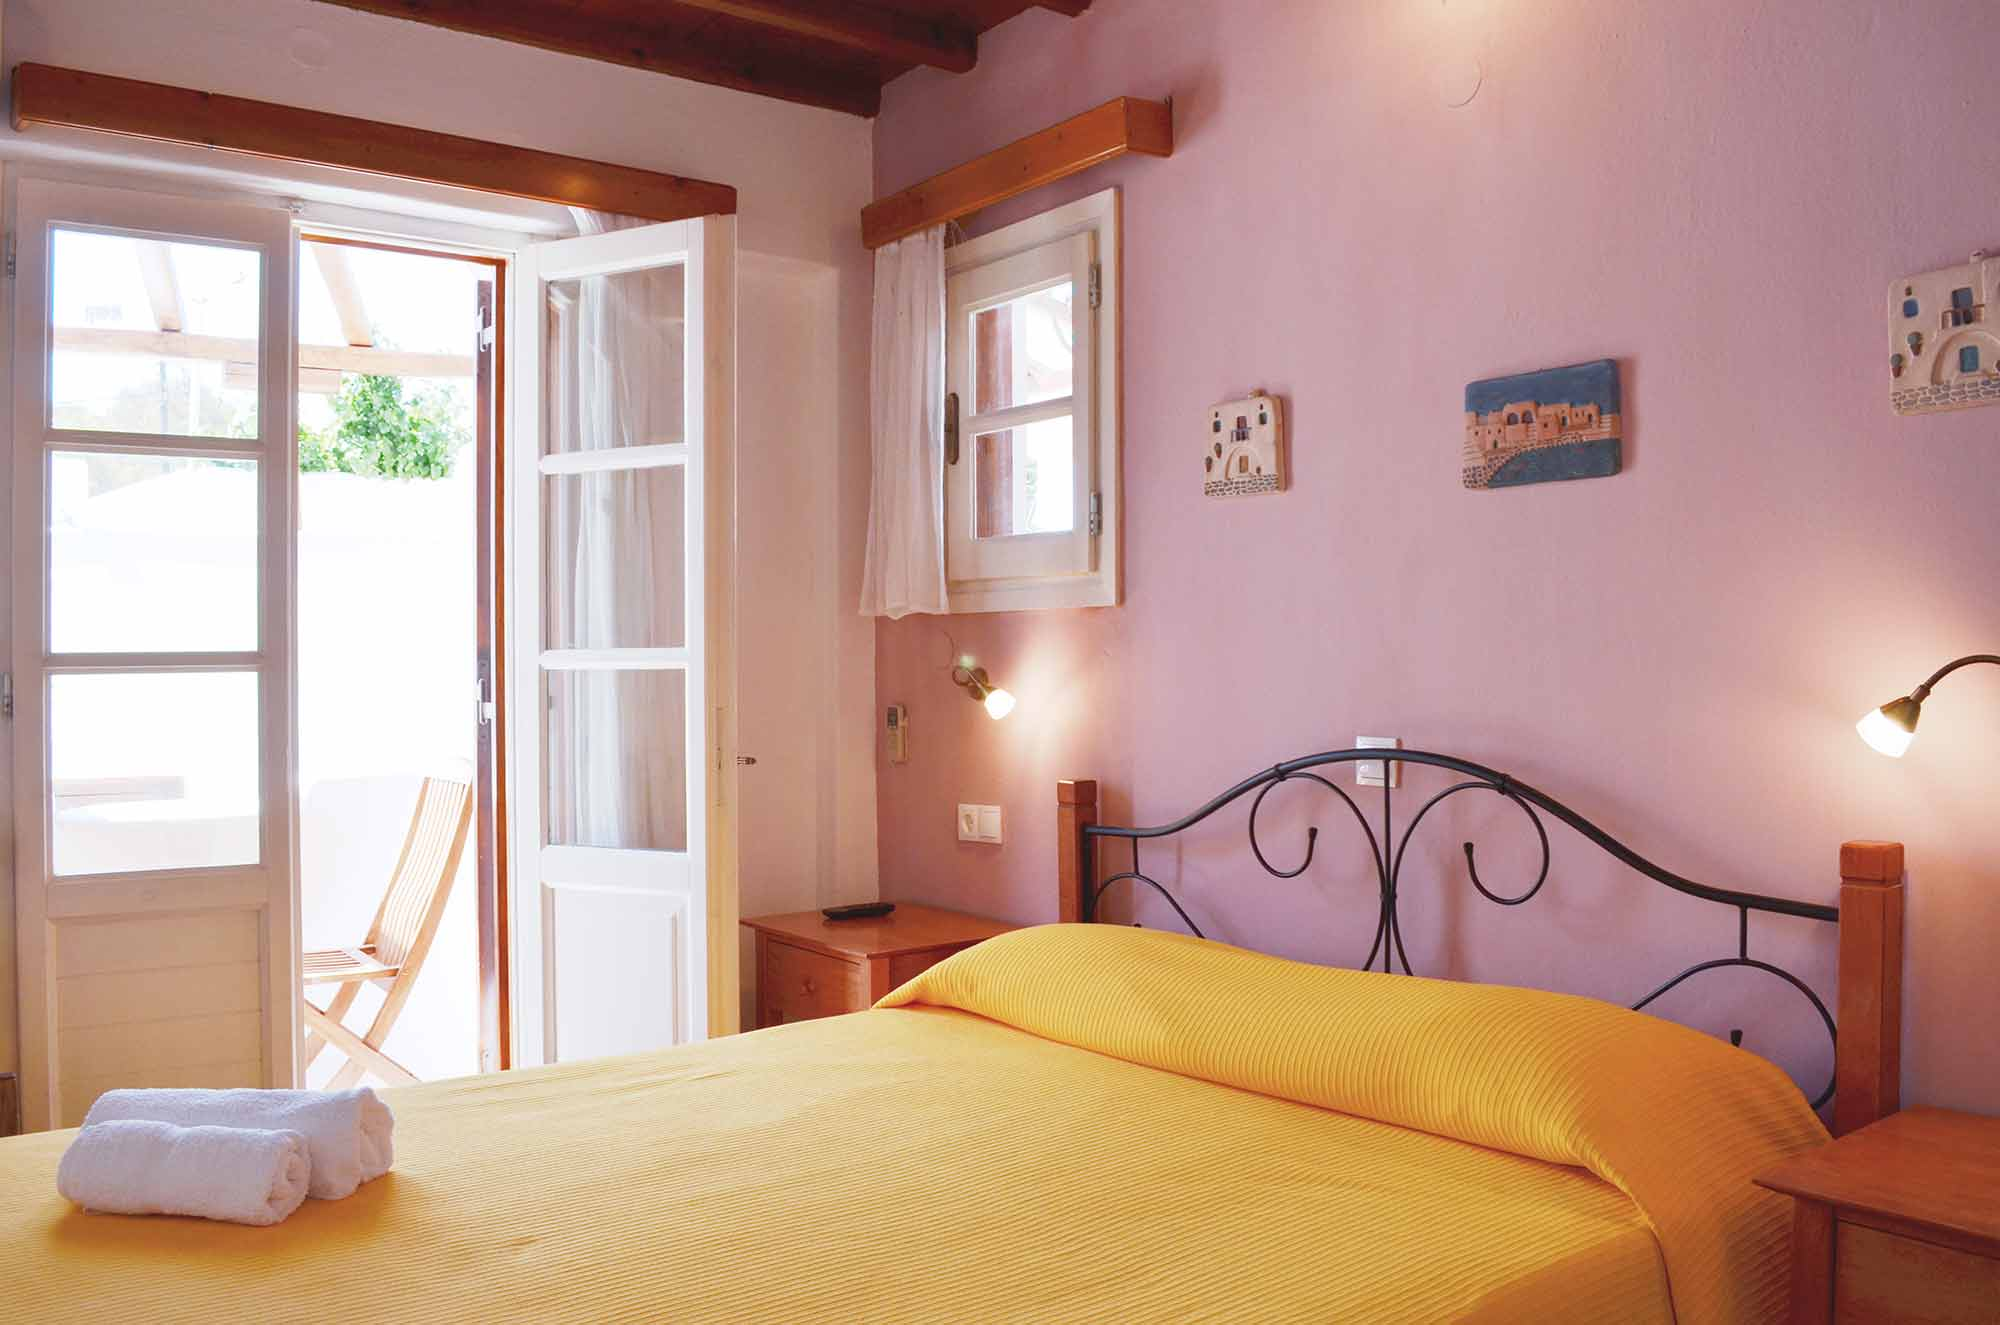 Villa Pinelopi - Room for rent